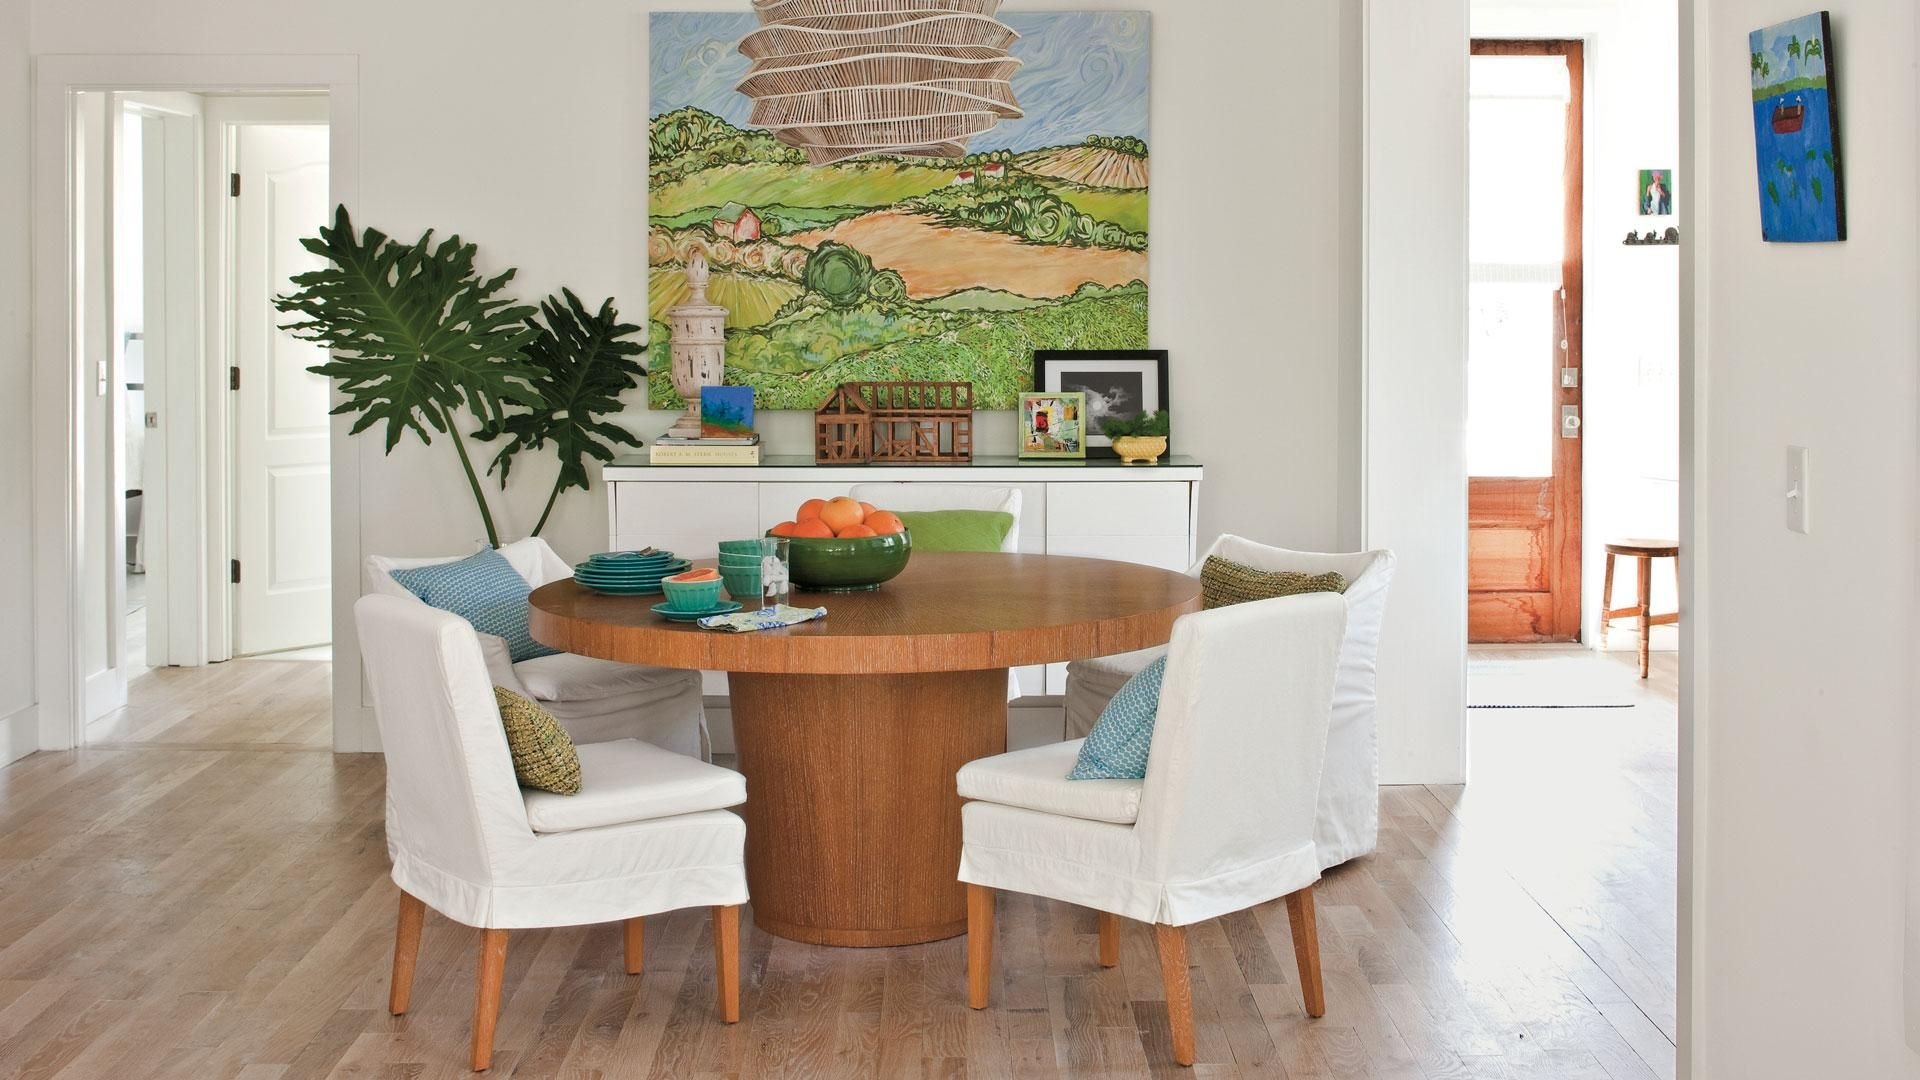 16 Things All Southern Girls Know And Love About Spring In The South Living Room Decor Unique Interior Design Living Room Elegant Living Room Decor Spring ideas dinning room